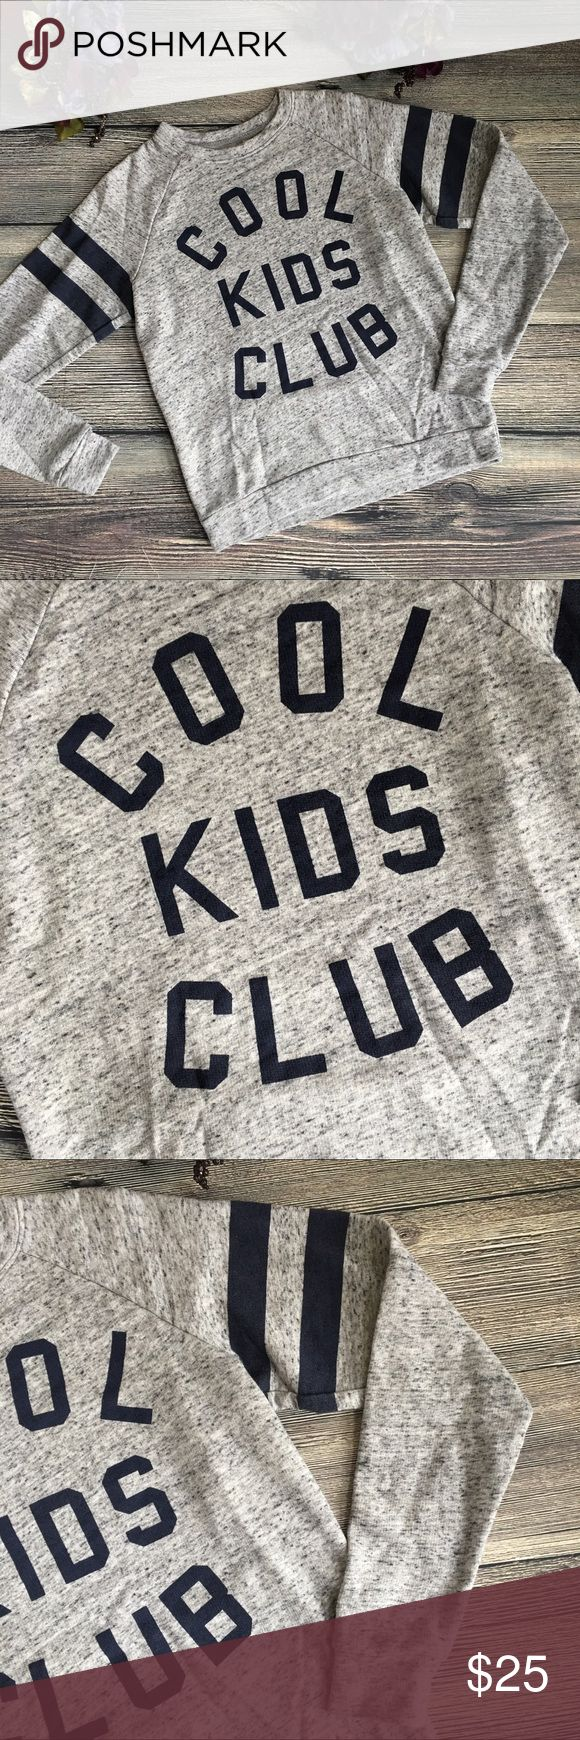 """Cool Kids Club Varsity Graphic Sweatshirt size S Meet Anniston. She's ready to show off your elite """"cool"""" status with her varsity stripes and collegiate lettering. Heather grey sweatshirt, navy graphics. From Mighty Fine, light cotton/poly blend. Machine washable. Size small (N1) Offers warmly welcomed. Mighty Fine Tops Sweatshirts & Hoodies"""